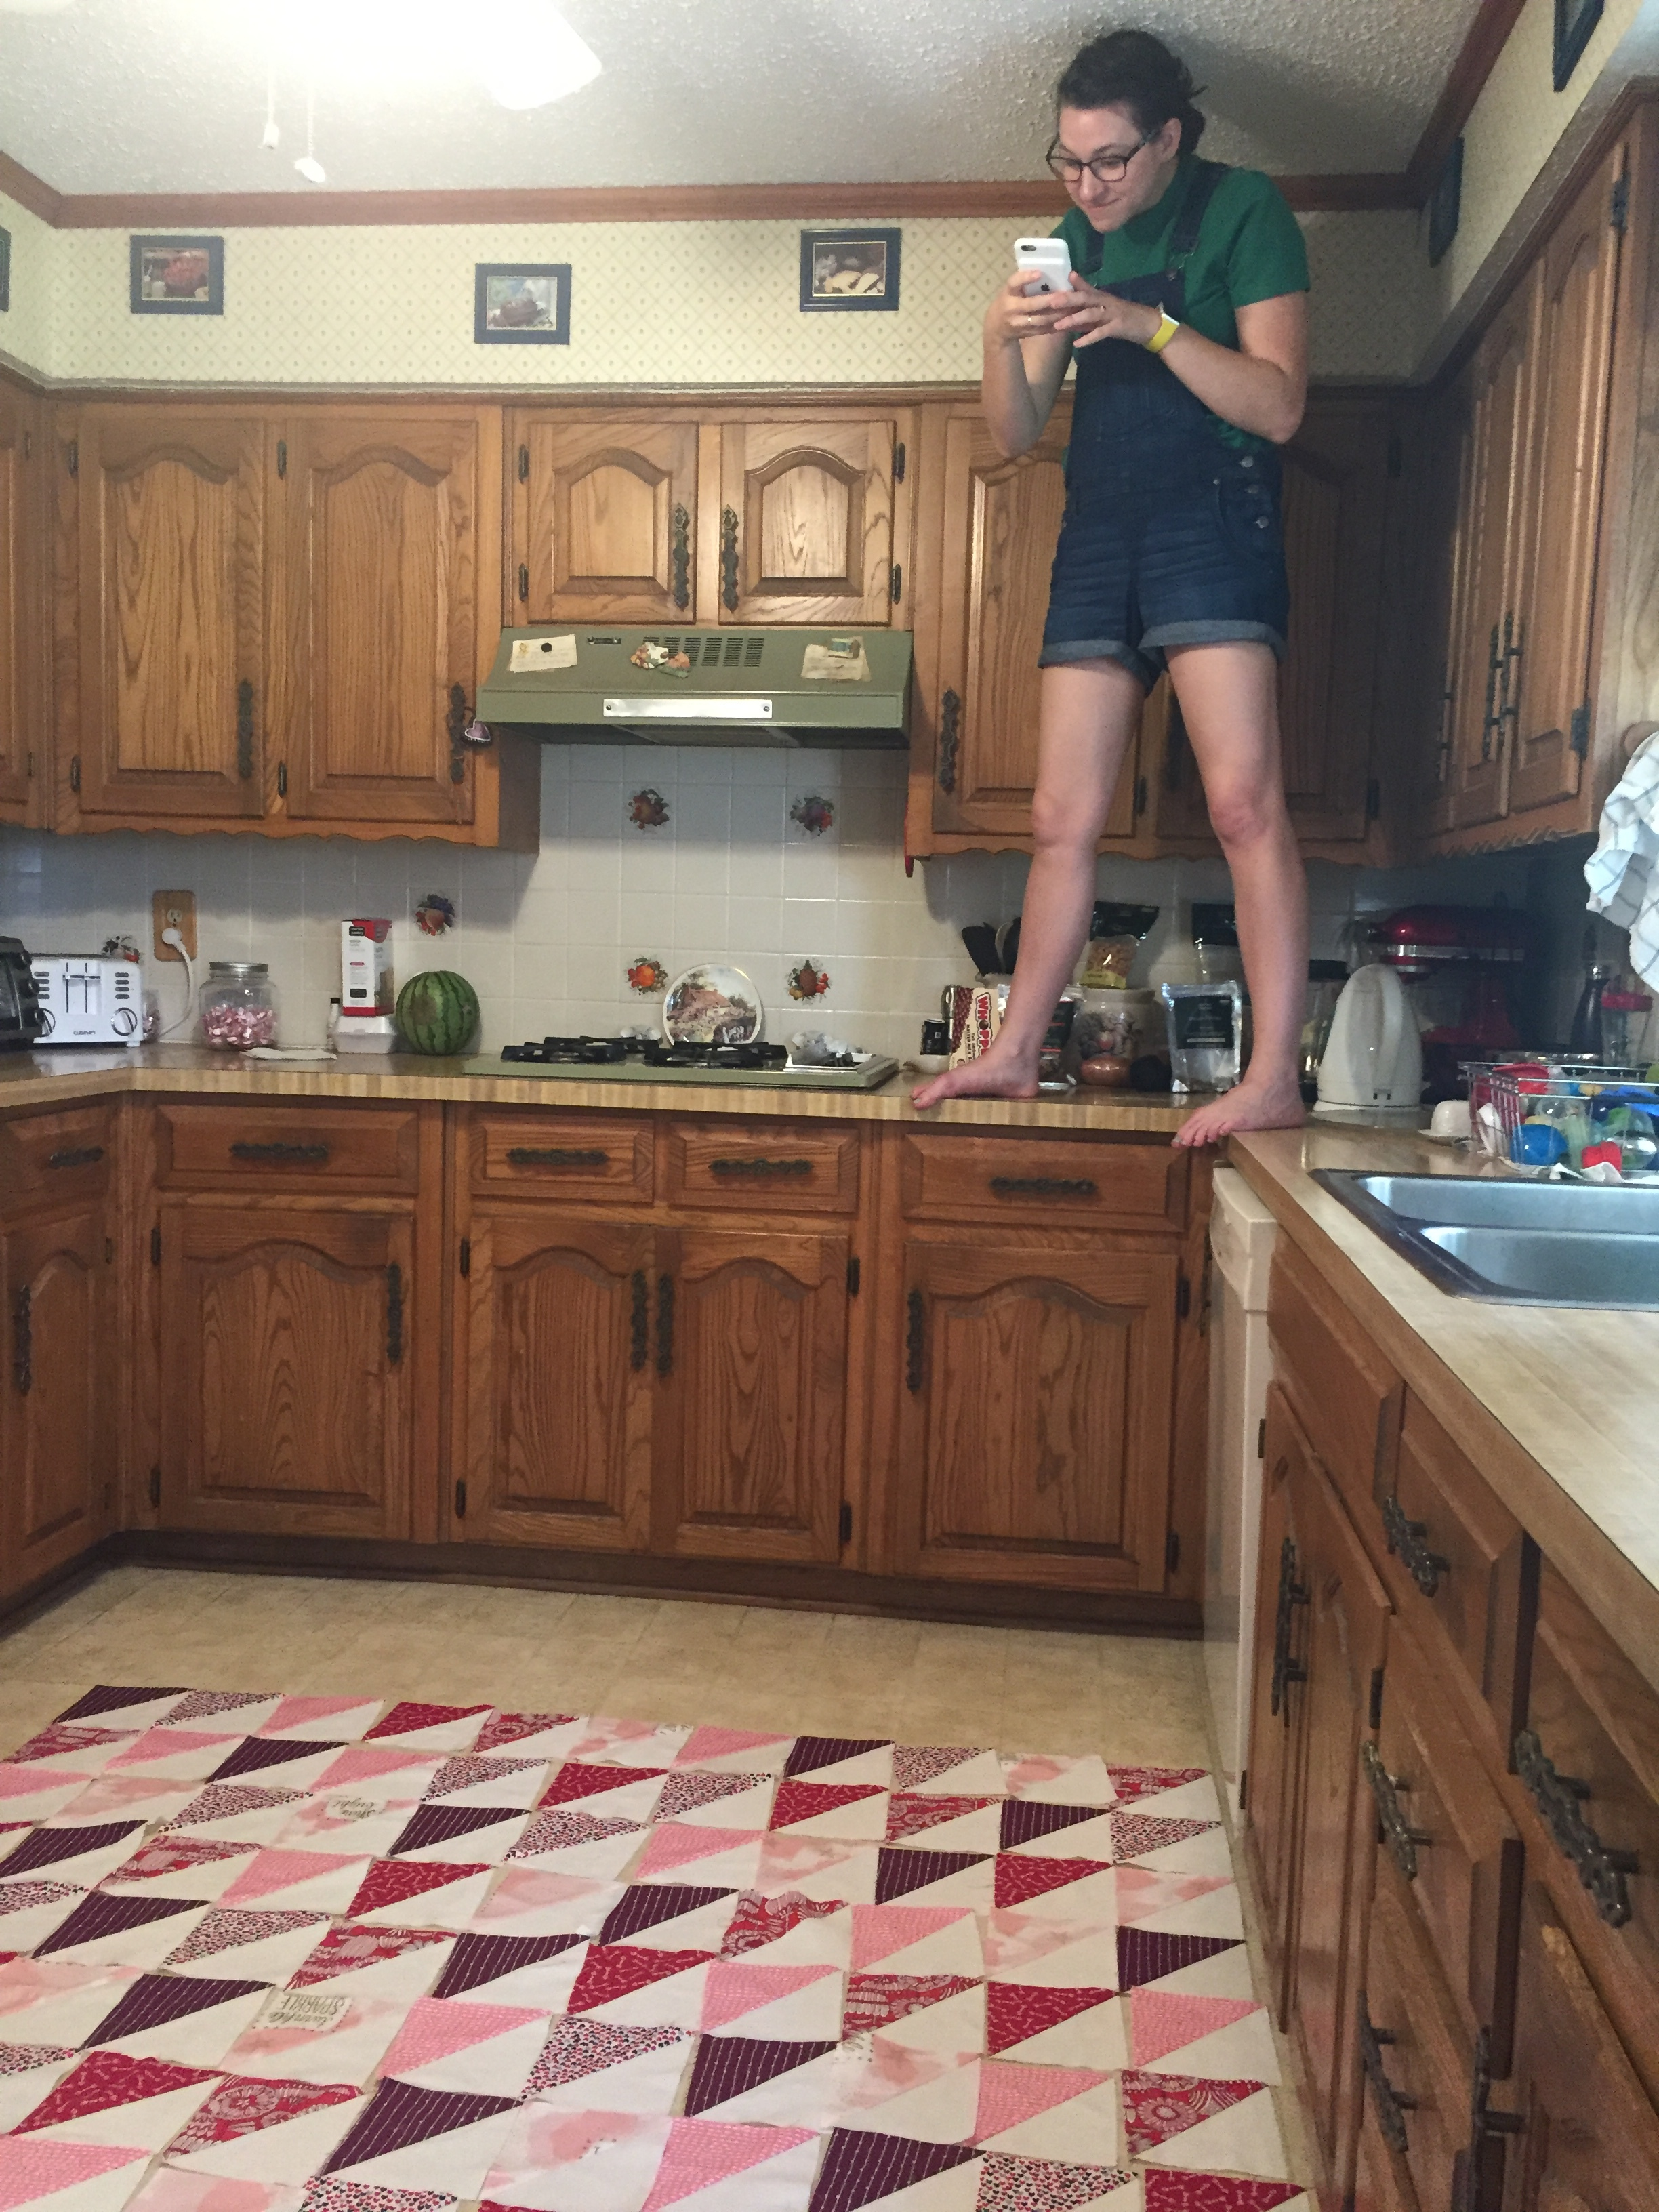 Every quilter has taken pics from above to see how the colors look from a distance. It's just a part of the quilting process. My sister had to stand on the counter to properly look at hers! #beentheredonethat